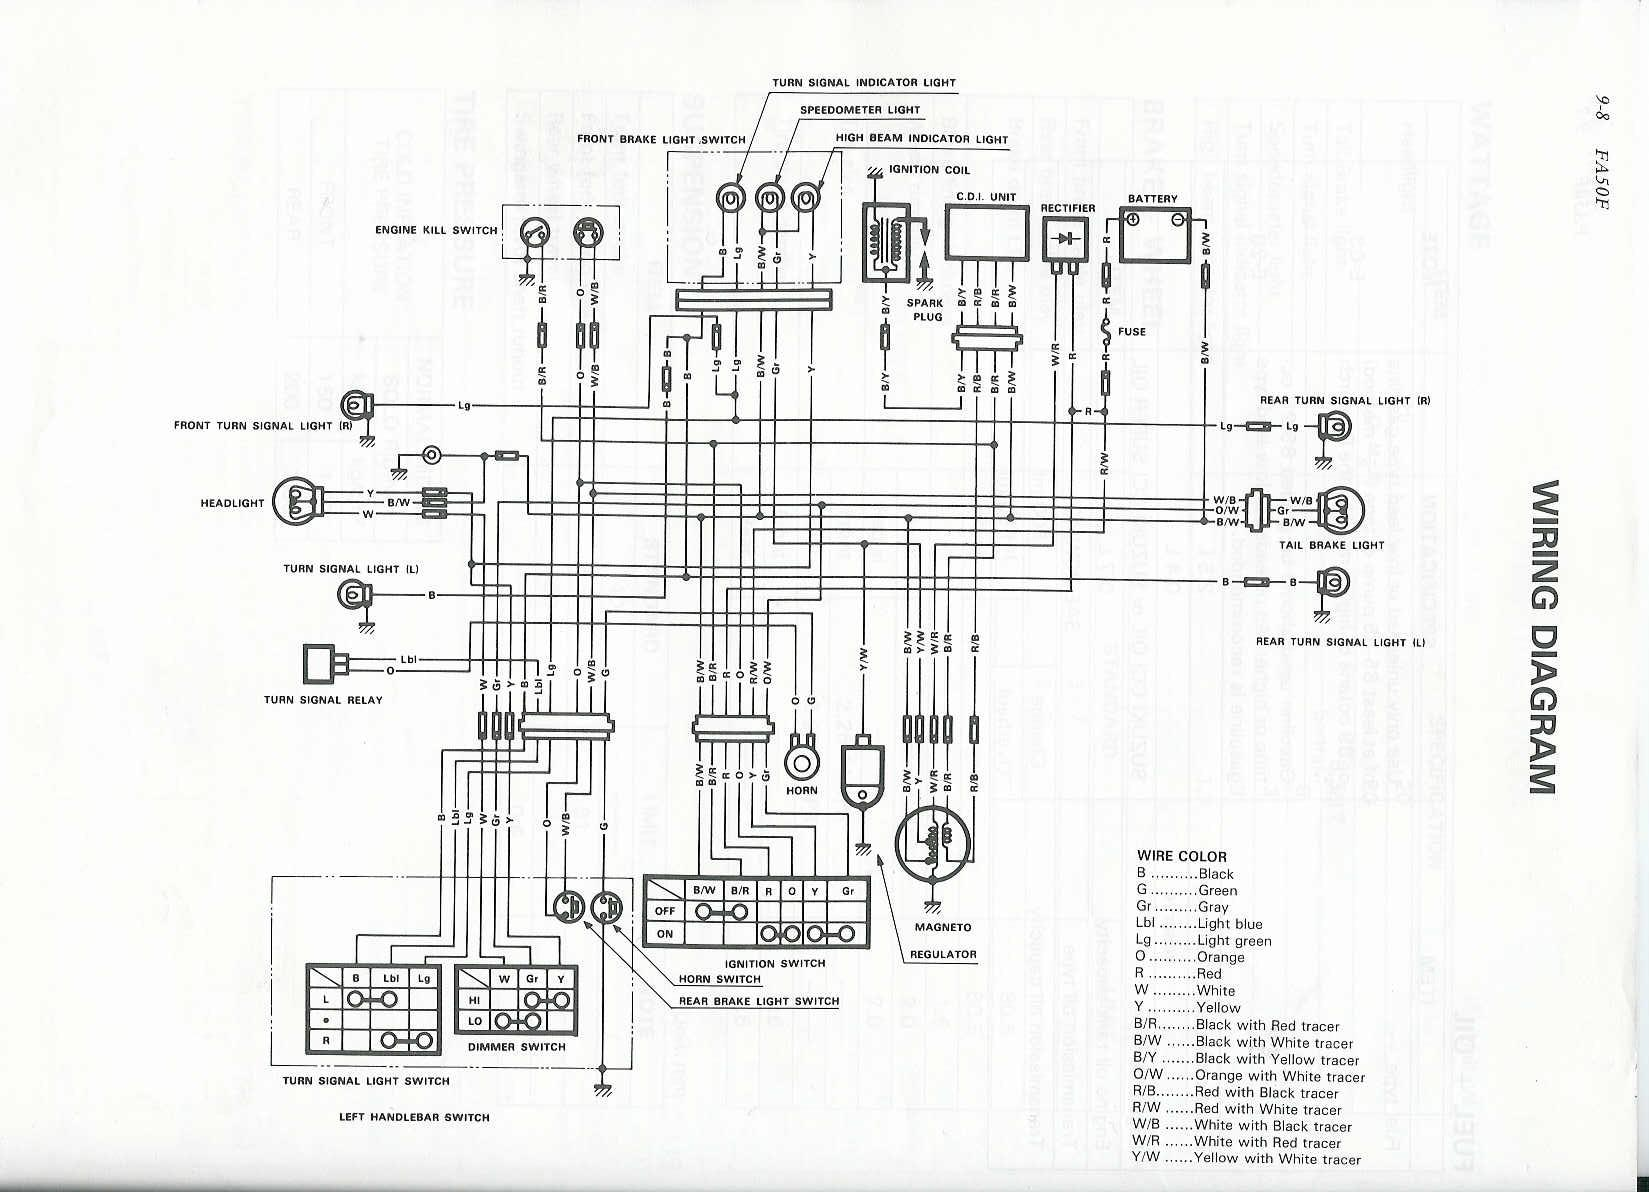 sno pro 3000 wiring diagram lennox 51m33 curtis harness boss snow plow